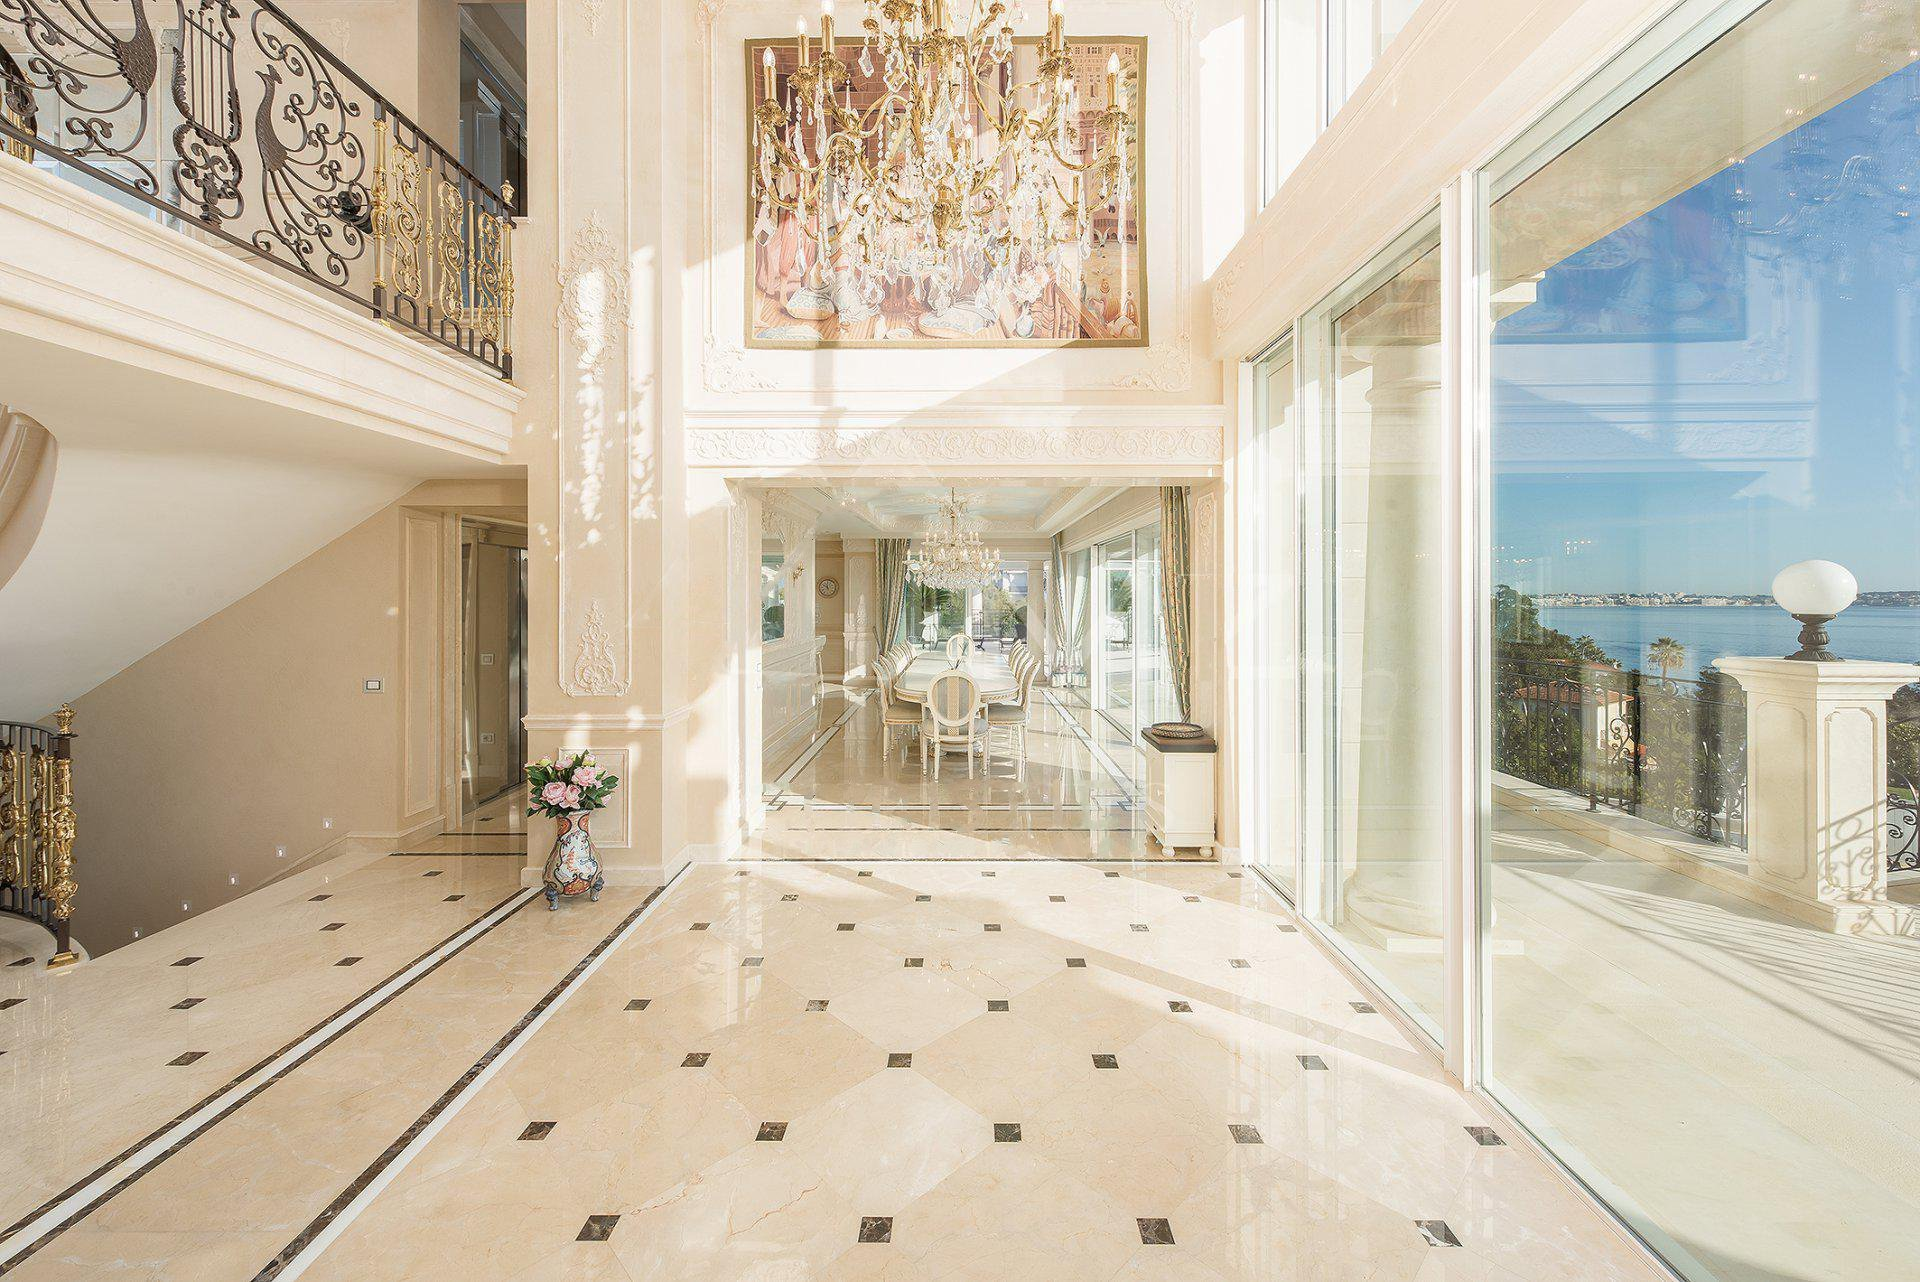 Villa Horizons at the gates of Cannes